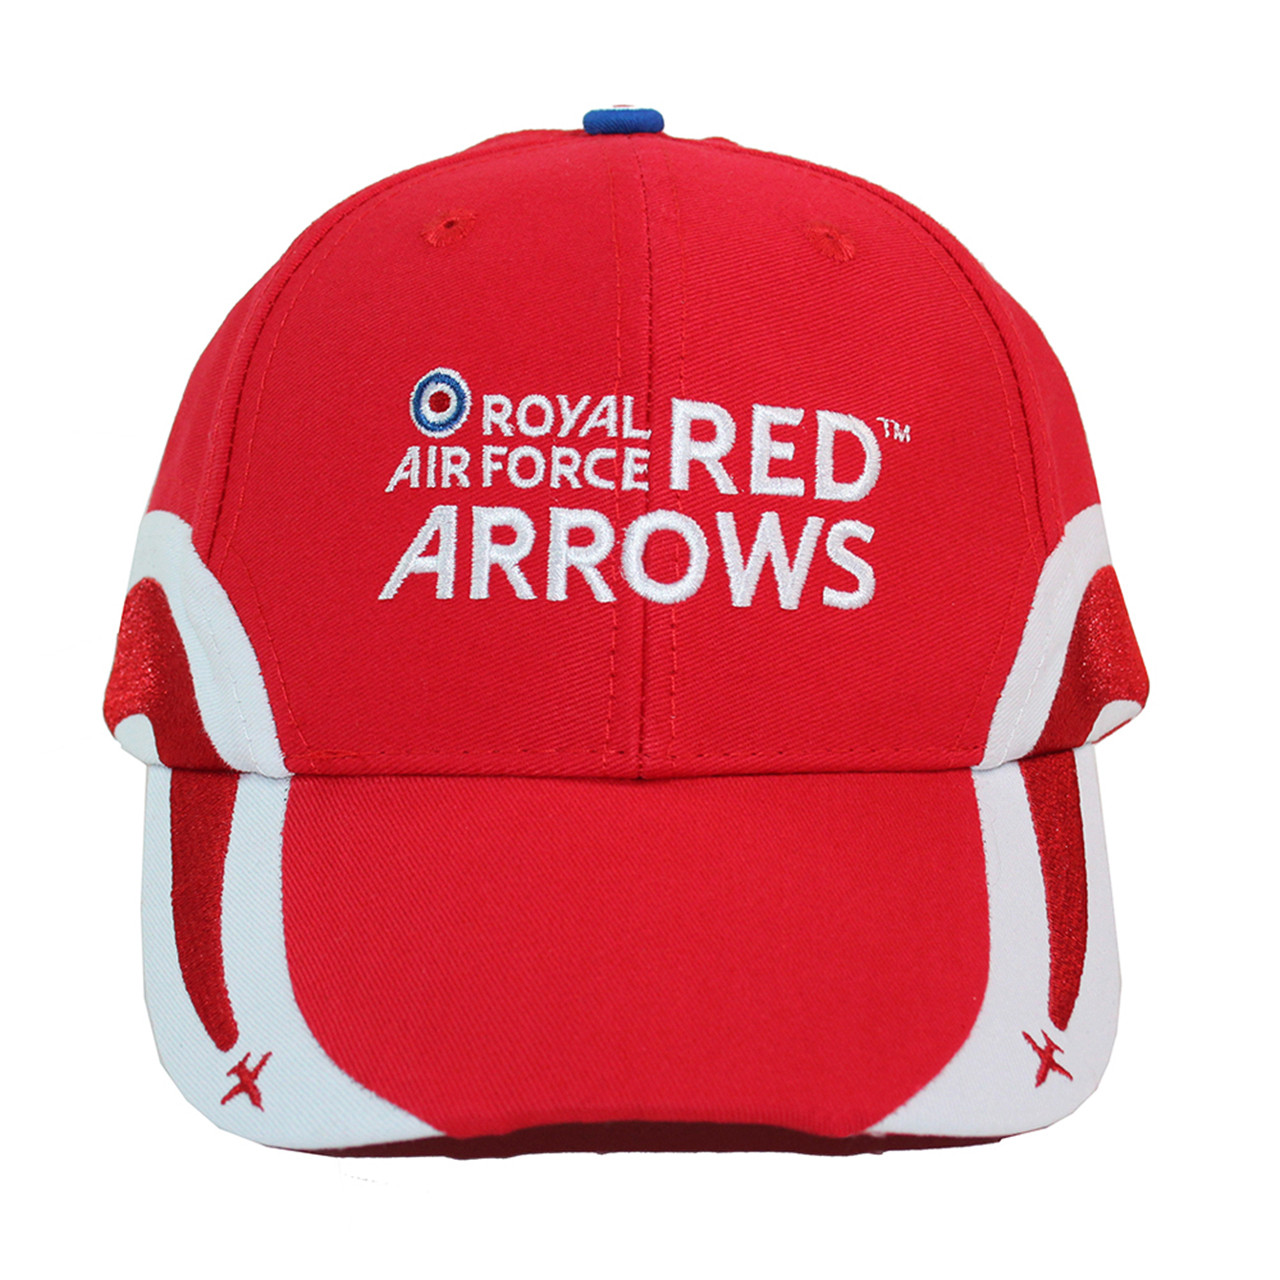 5c684aef7 Official RAF Red Arrows Embroidered Plane Cap